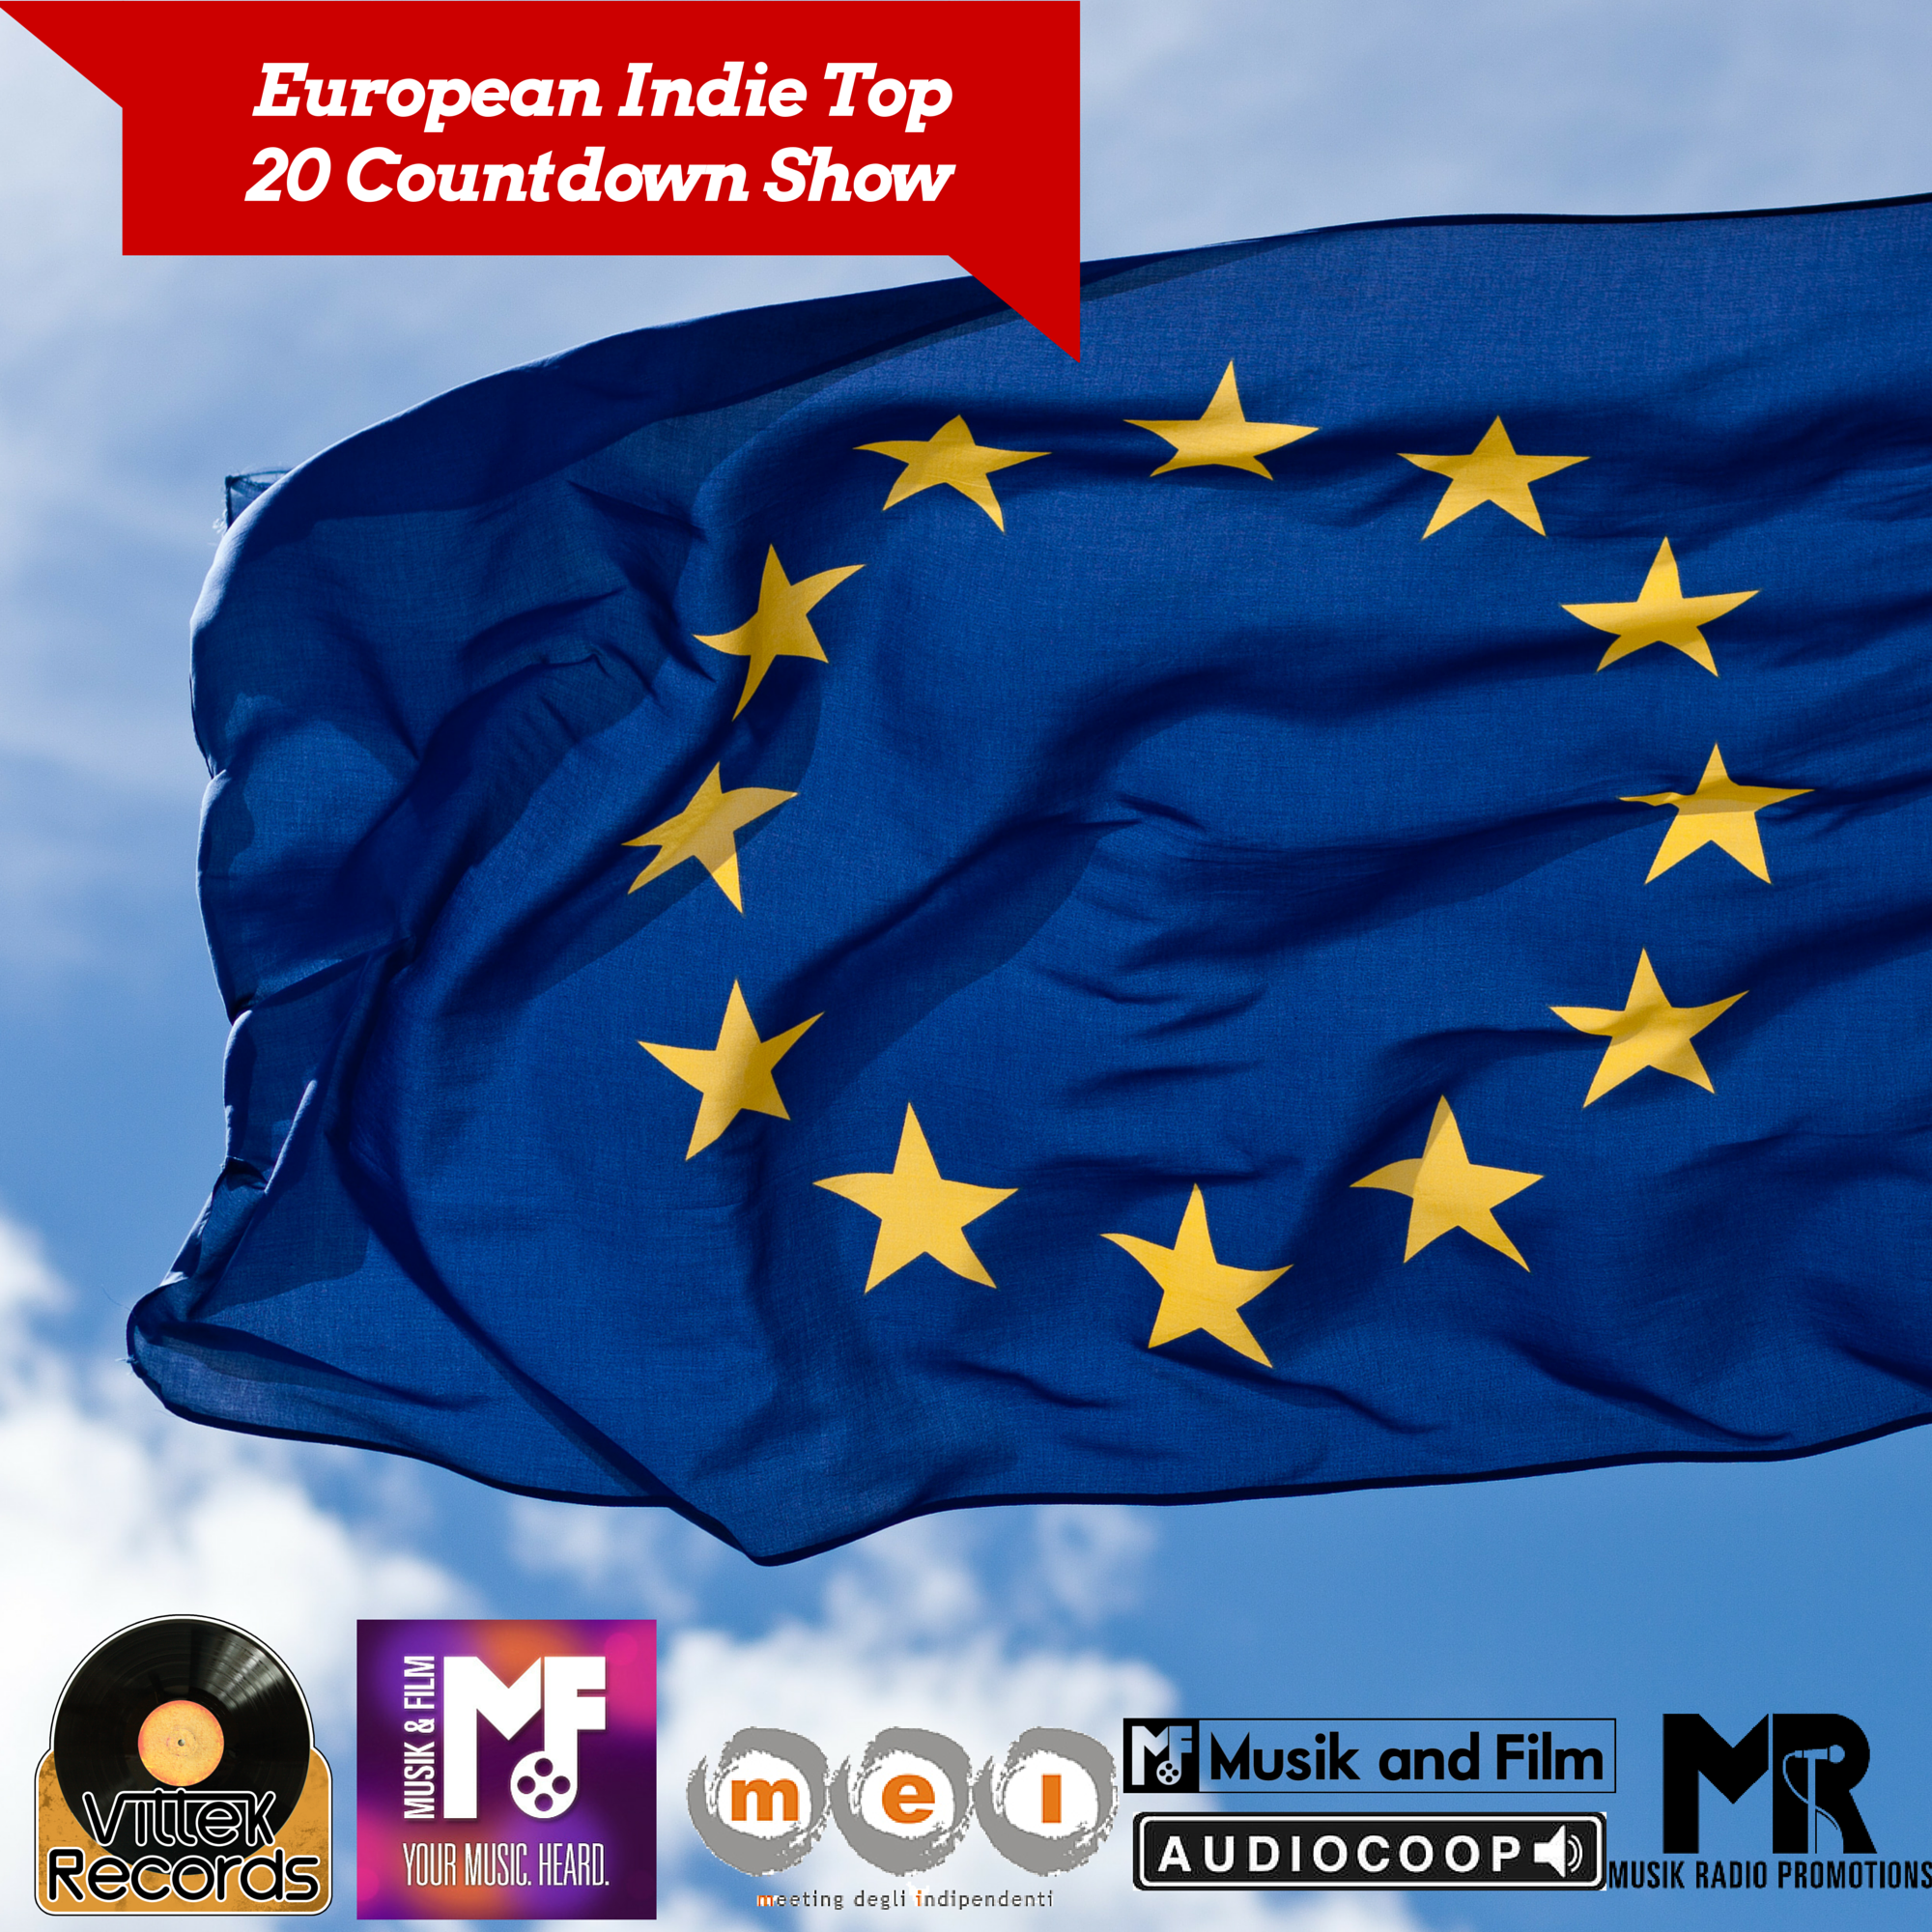 European Indie Top 20 Countdown Show